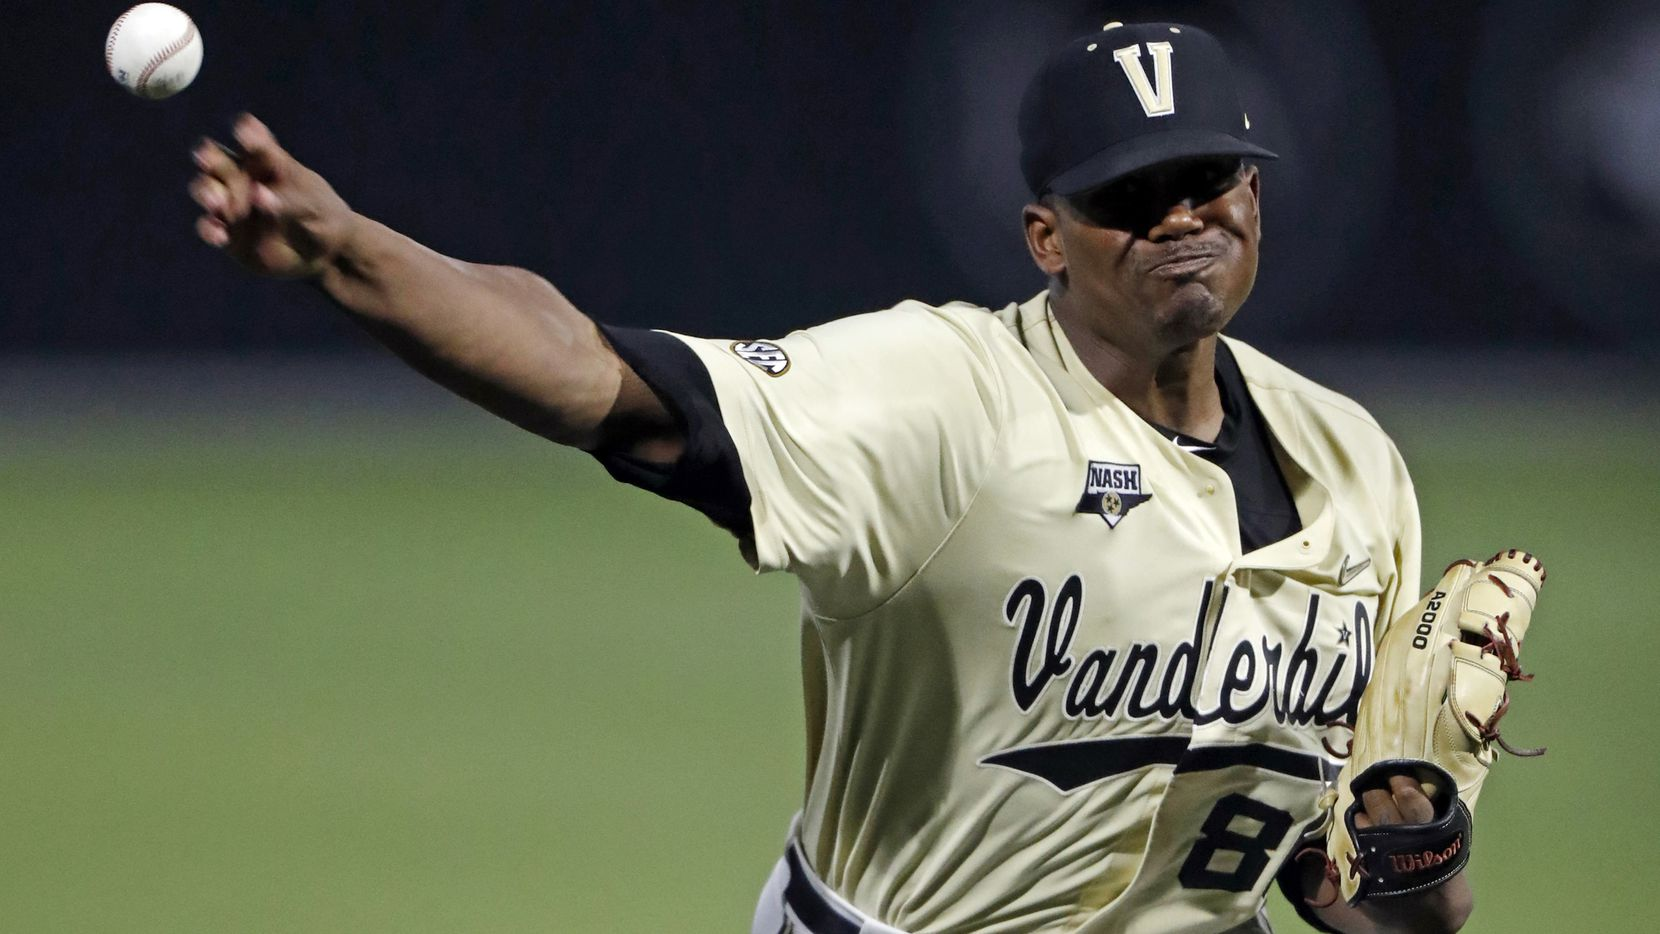 FILE - In this June 8, 2019, file photo, Vanderbilt's Kumar Rocker throws to a Duke batter during the eighth inning of an NCAA college baseball tournament super regional game in Nashville, Tenn. The 6-4, 255-pound Rocker was the talk of the NCAA Tournament after throwing a 19-strikeout no-hitter against Duke in super regionals and going 2-0 with a 1.46 ERA to earn Most Outstanding Player at the College World Series. (AP Photo/Wade Payne, File)